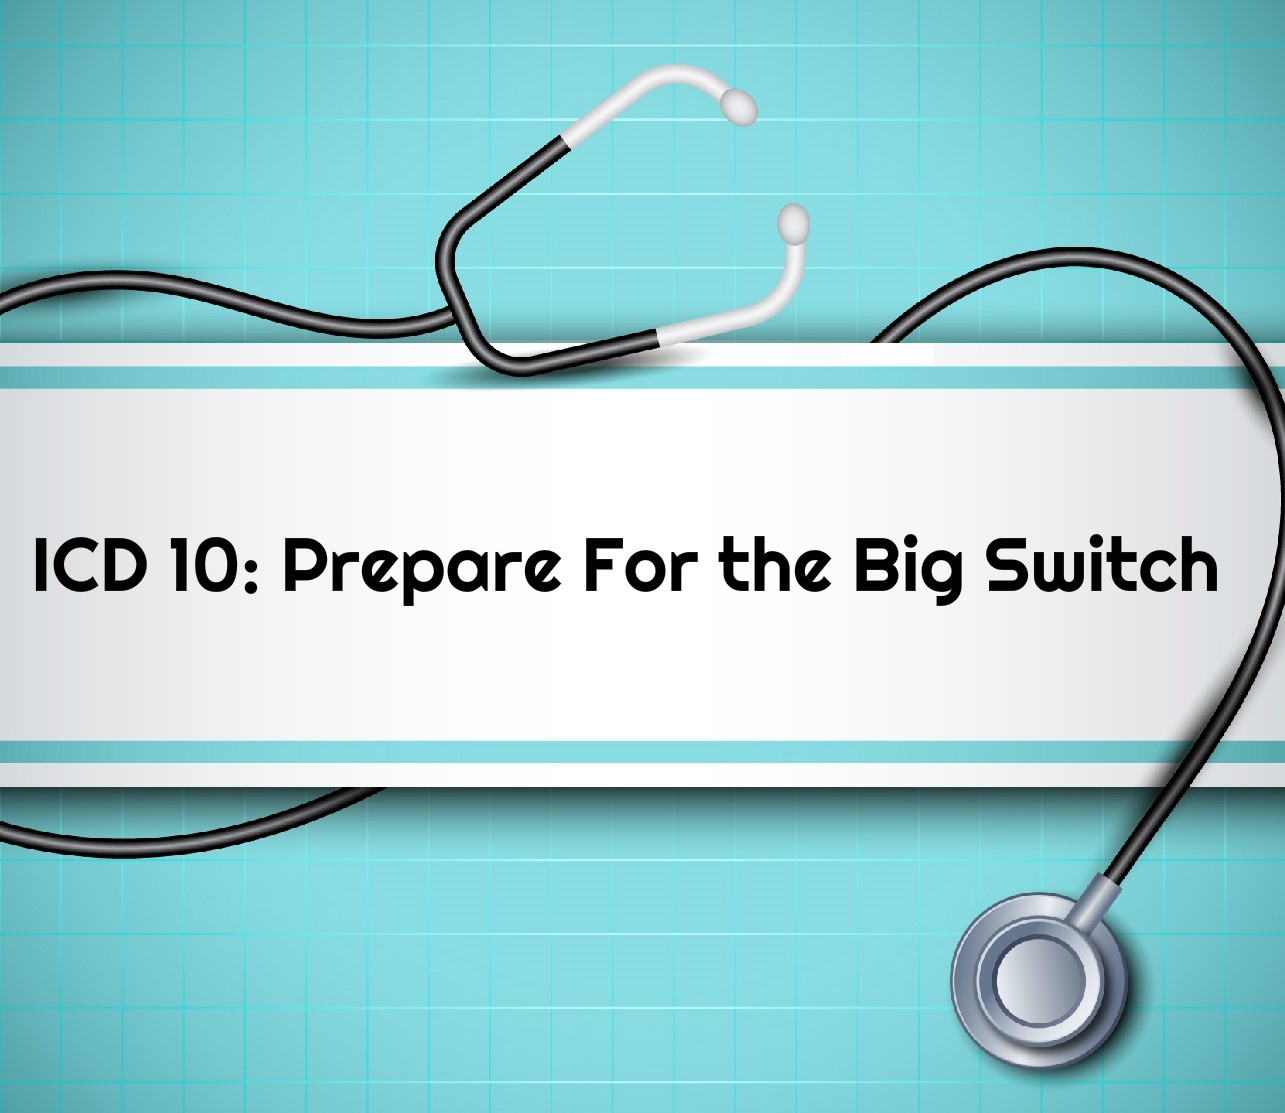 ICD 10 Switch